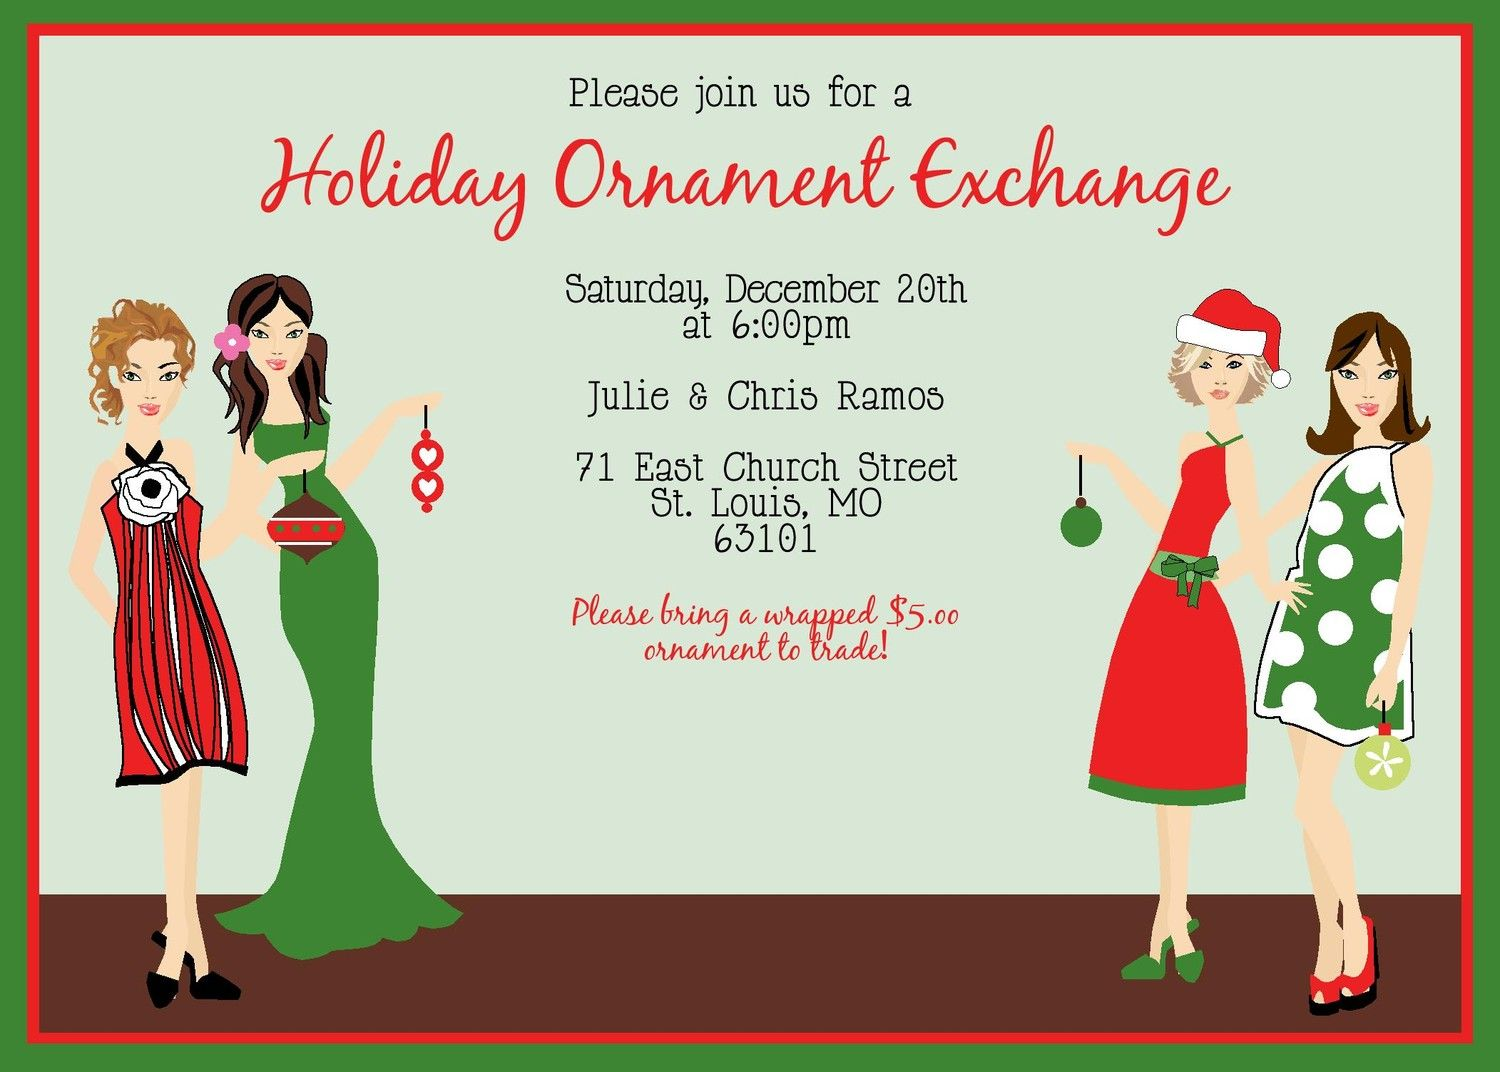 Ornament Party Ideas Ornament Exchange Swap Trade Holiday